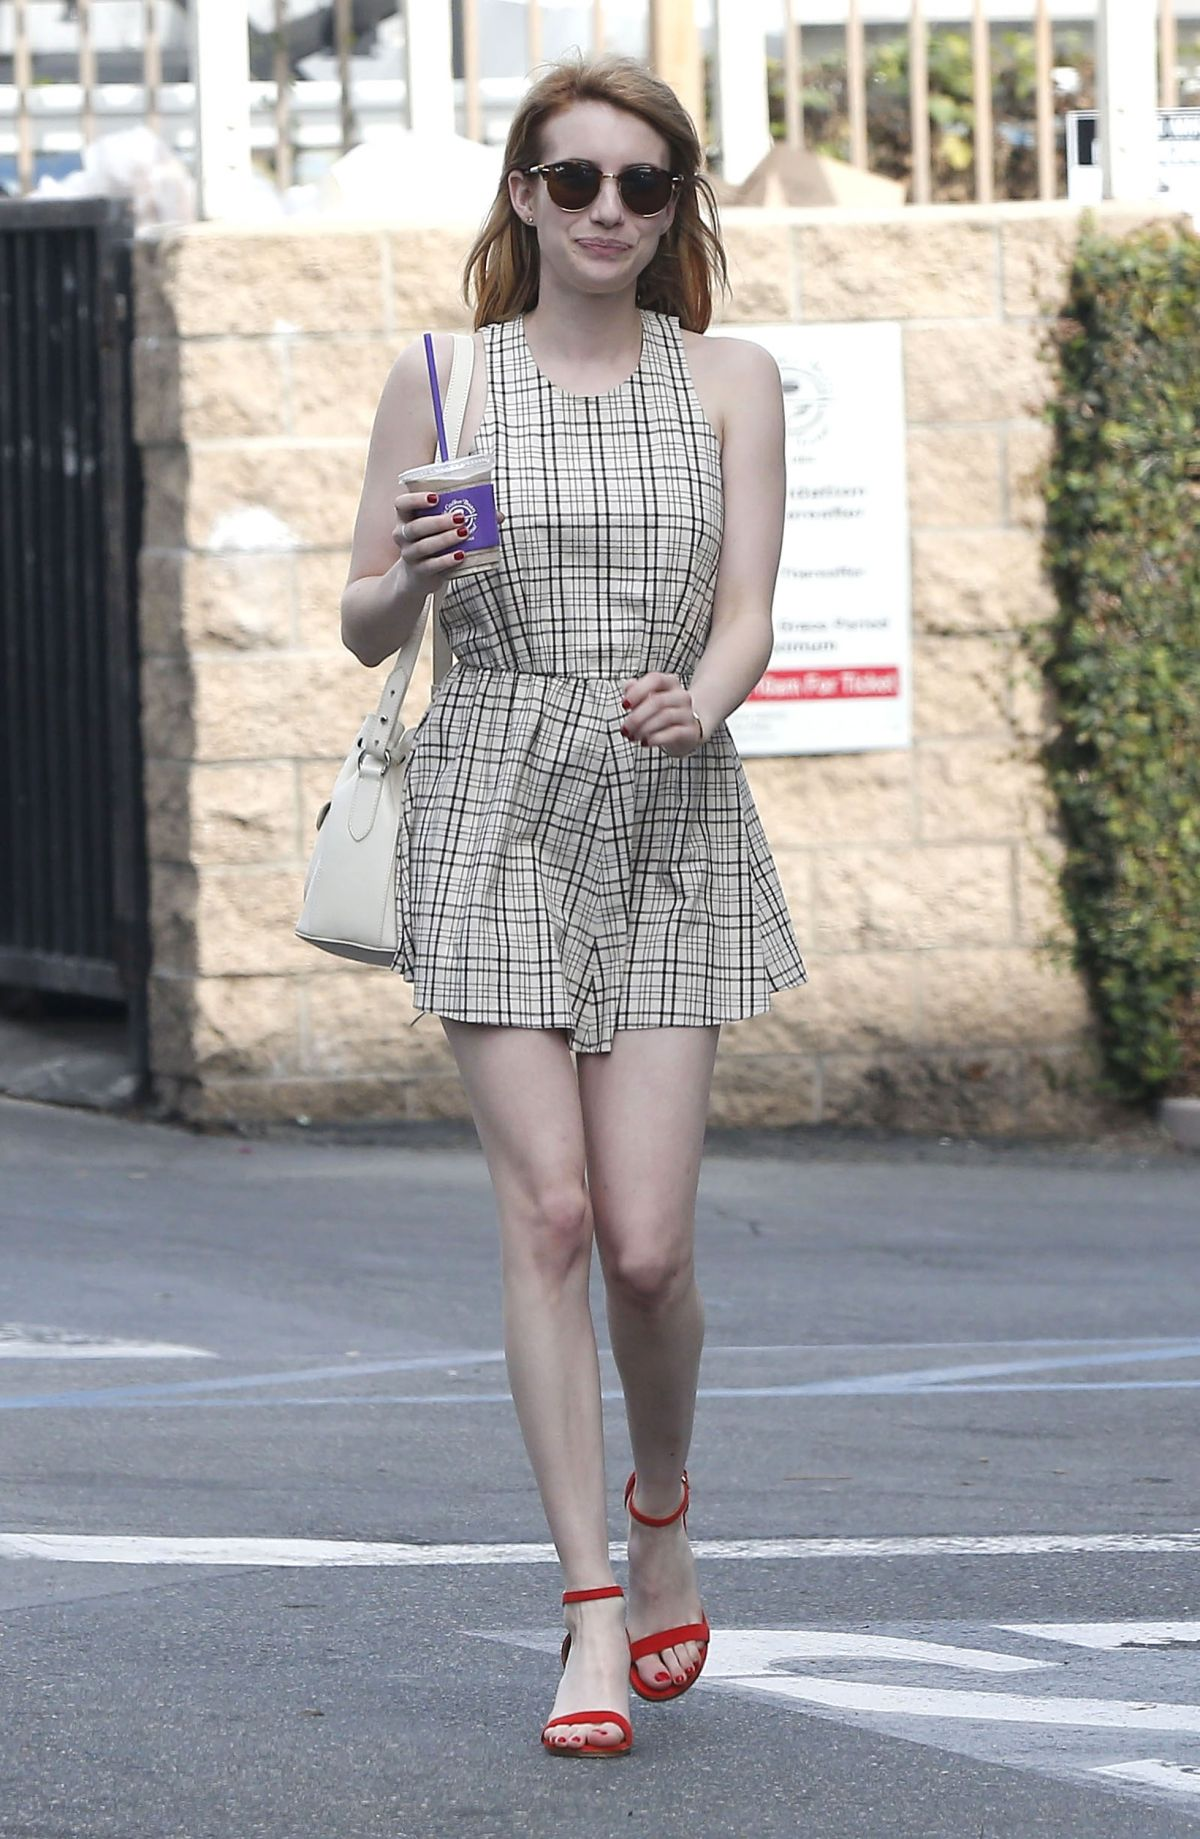 emma roberts out and about in los angeles 03272016